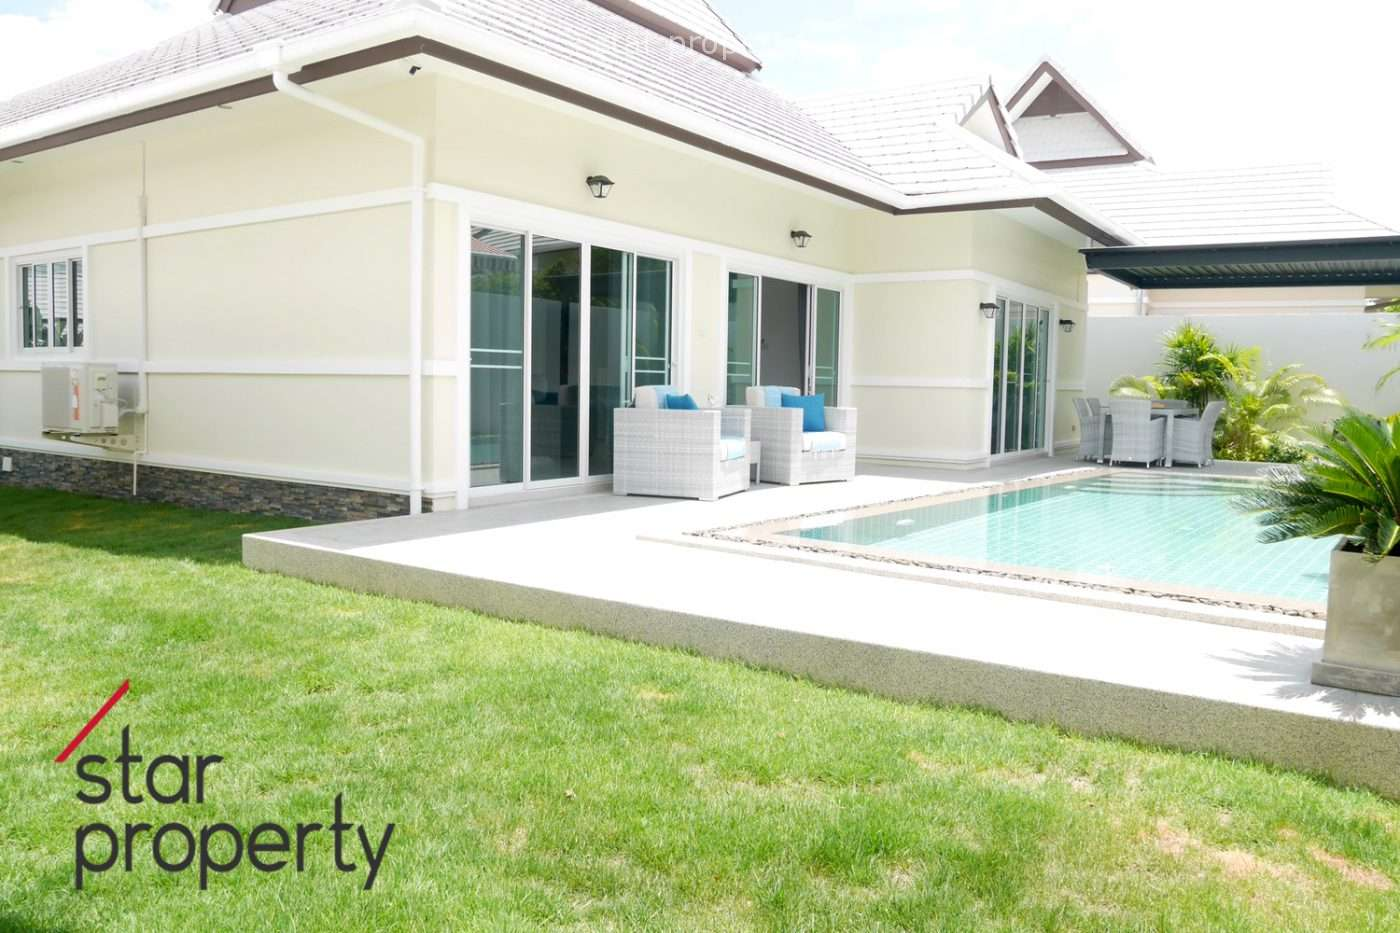 Pool Villa for Sale near Banyan Golf Club